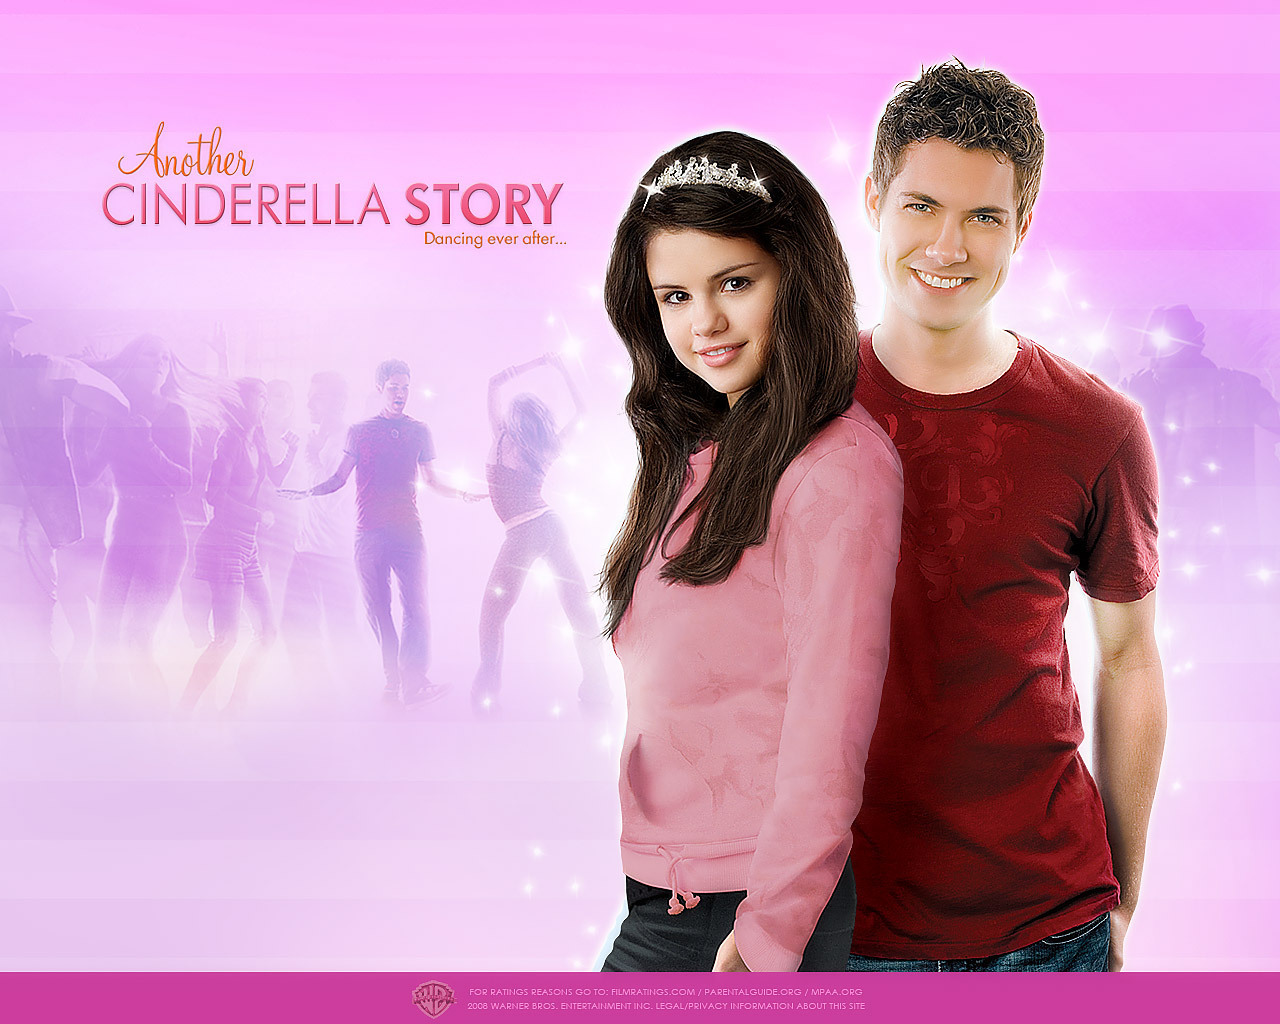 selena gomez and drew seeley images selena hd wallpaper